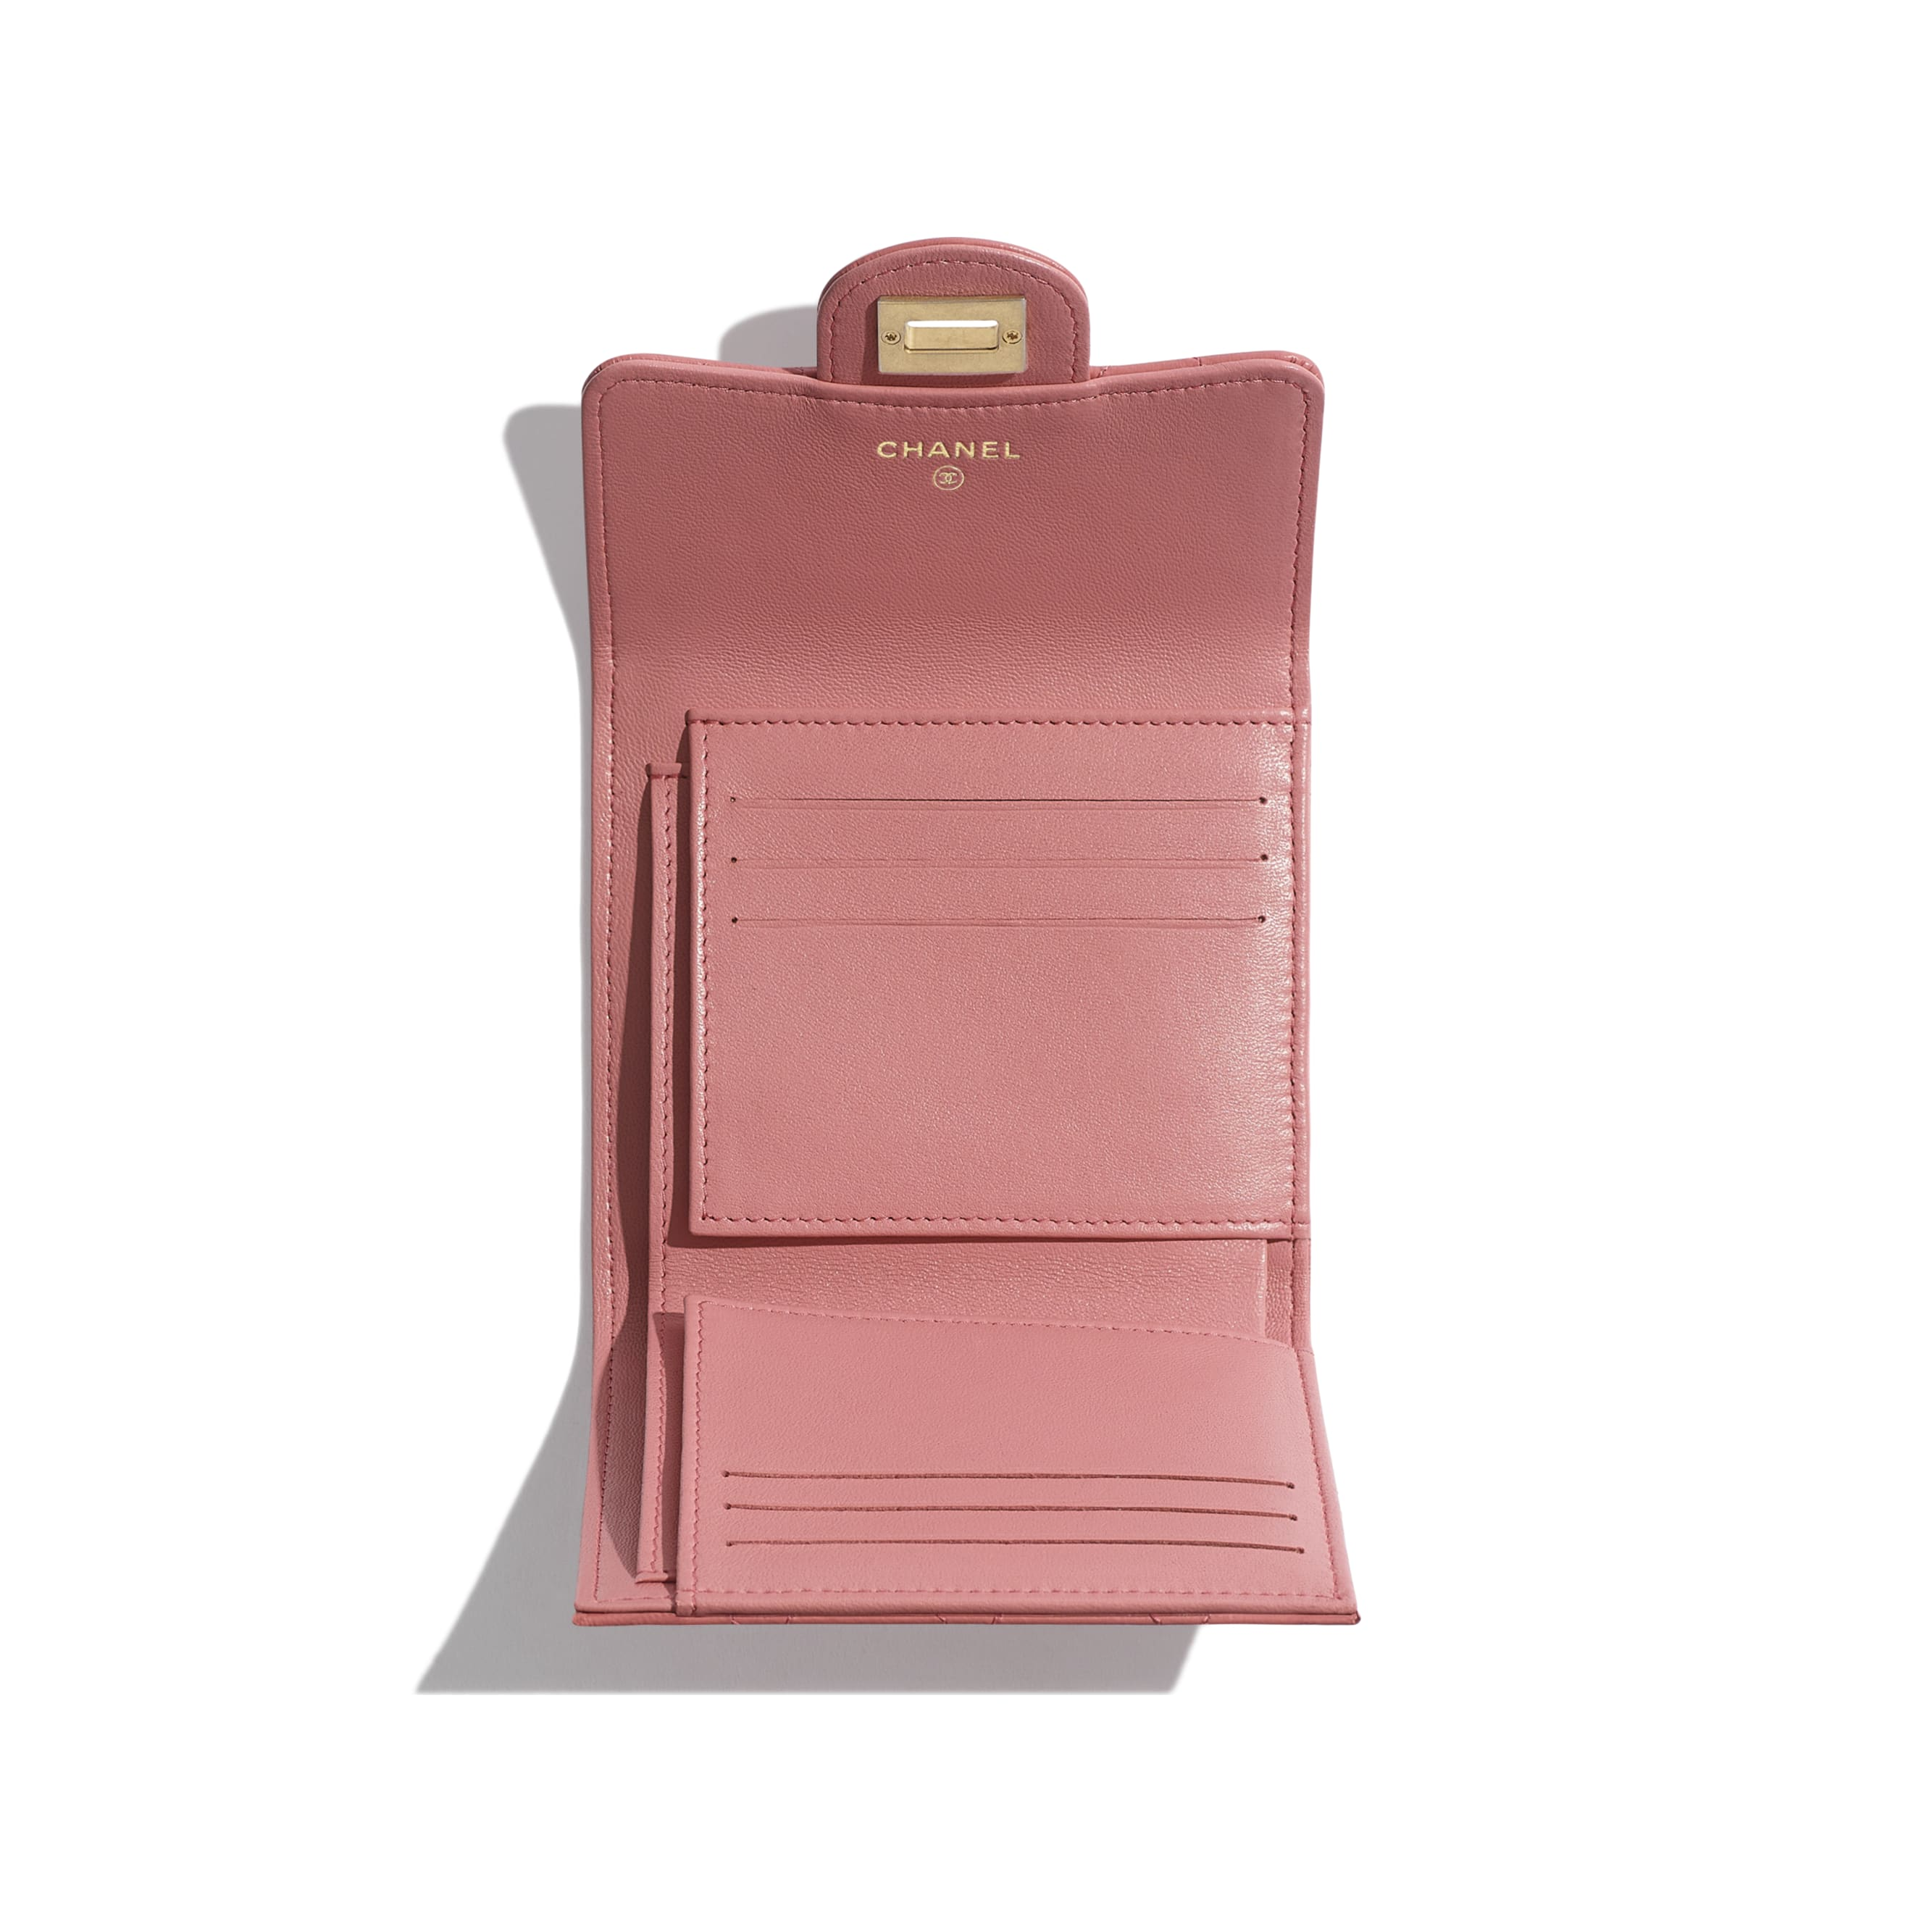 2.55 Small Flap Wallet - Pink - Aged Calfskin & Gold-Tone Metal - Other view - see standard sized version